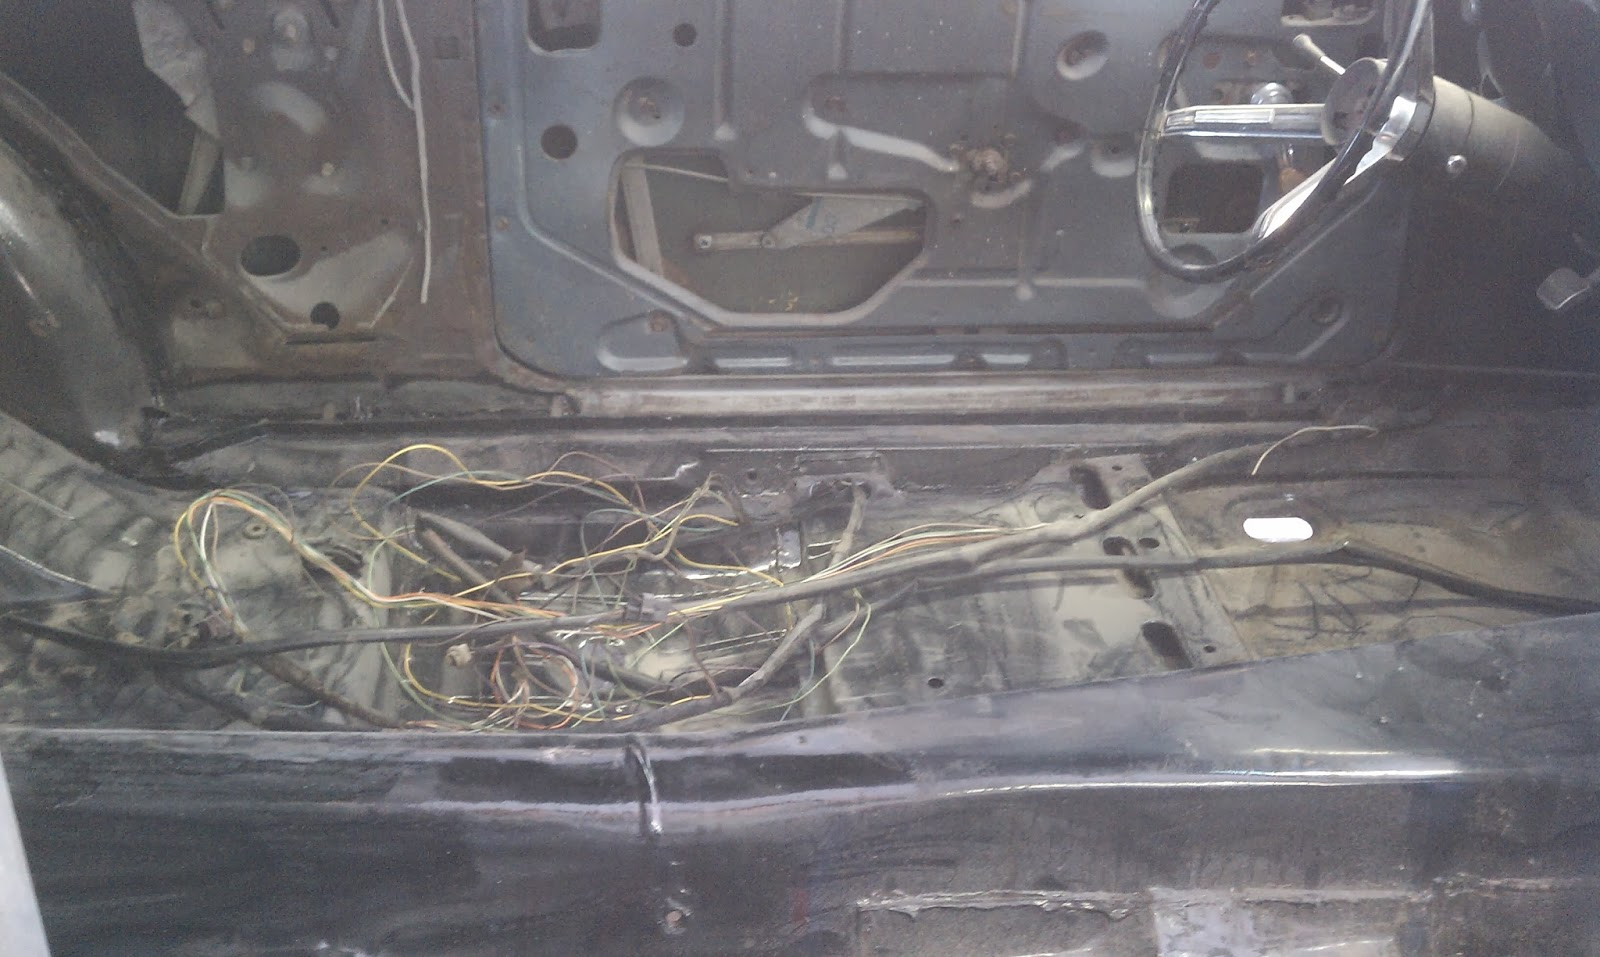 medium resolution of this car is 45 years old and so is the wiring back then a wiring harness was only really designed to last 10 years